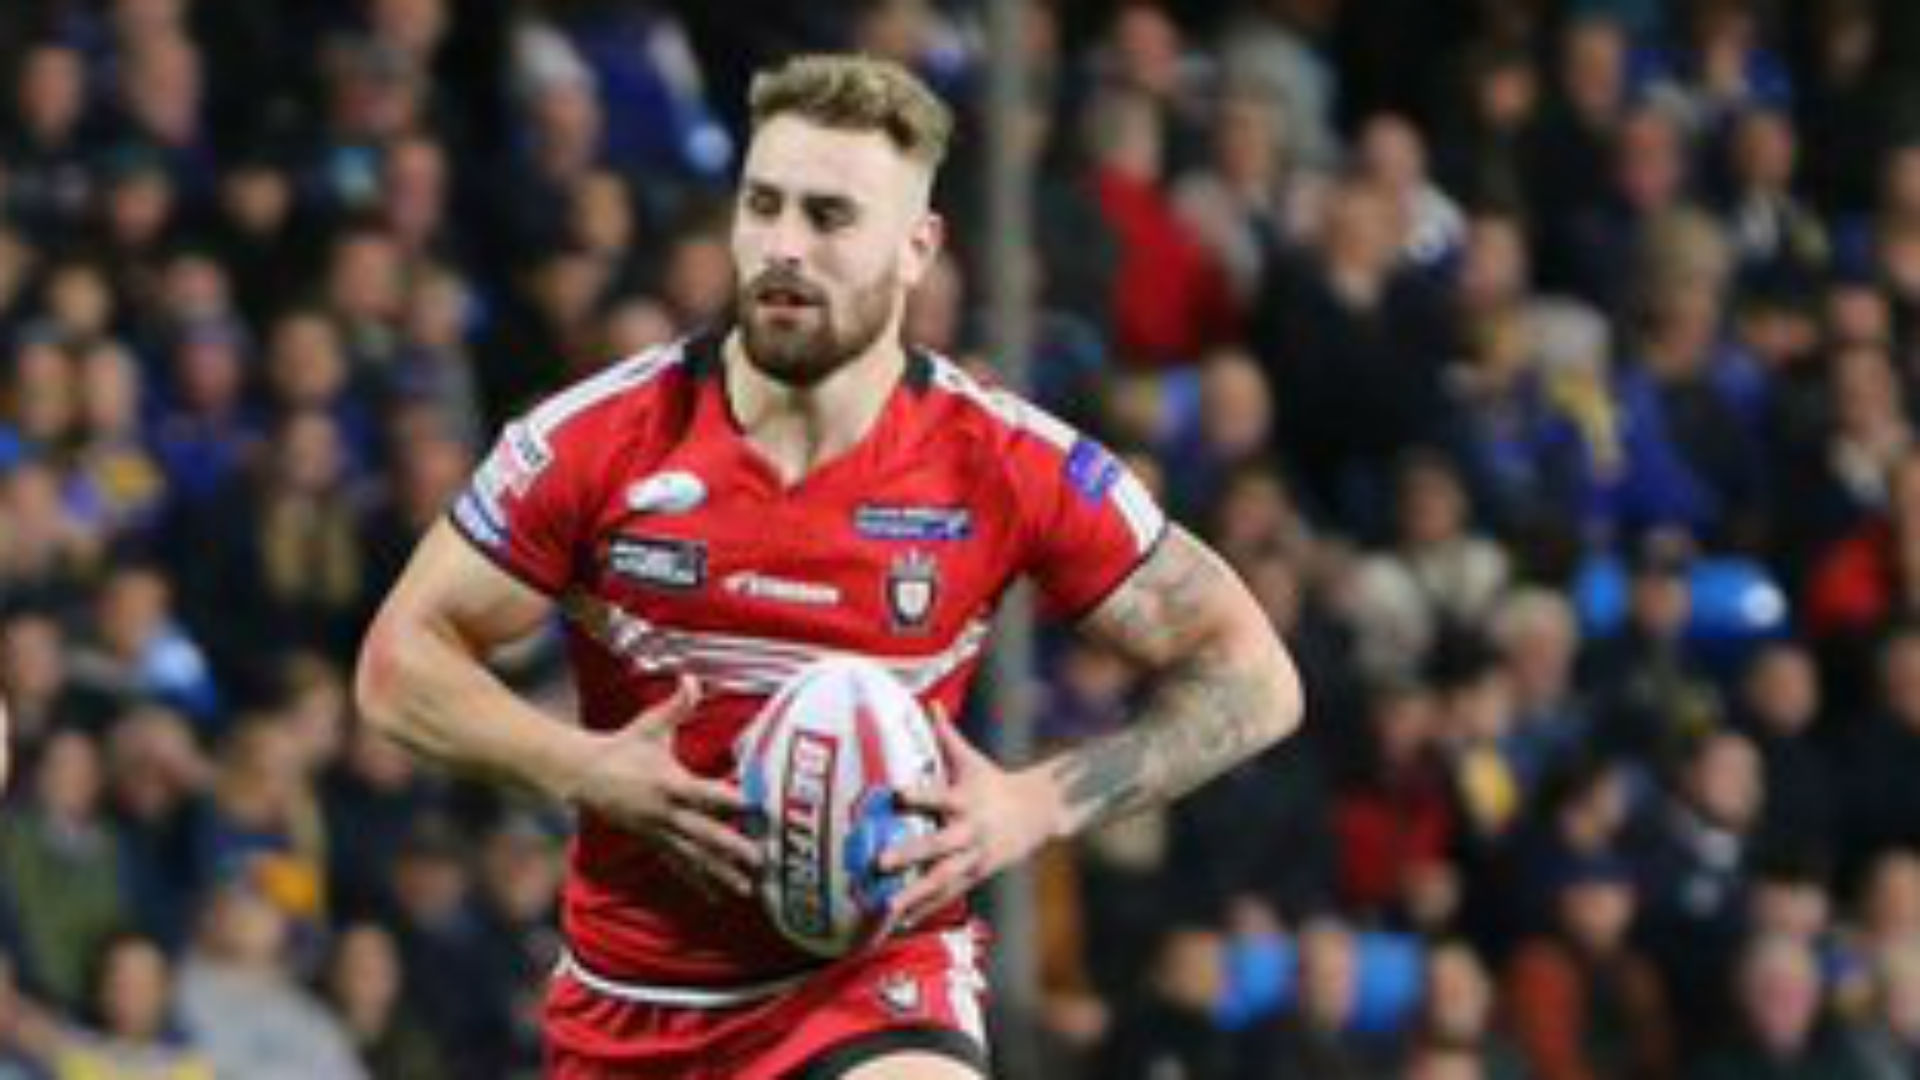 Former Salford forward Turgut hospitalised with 'severe injuries'